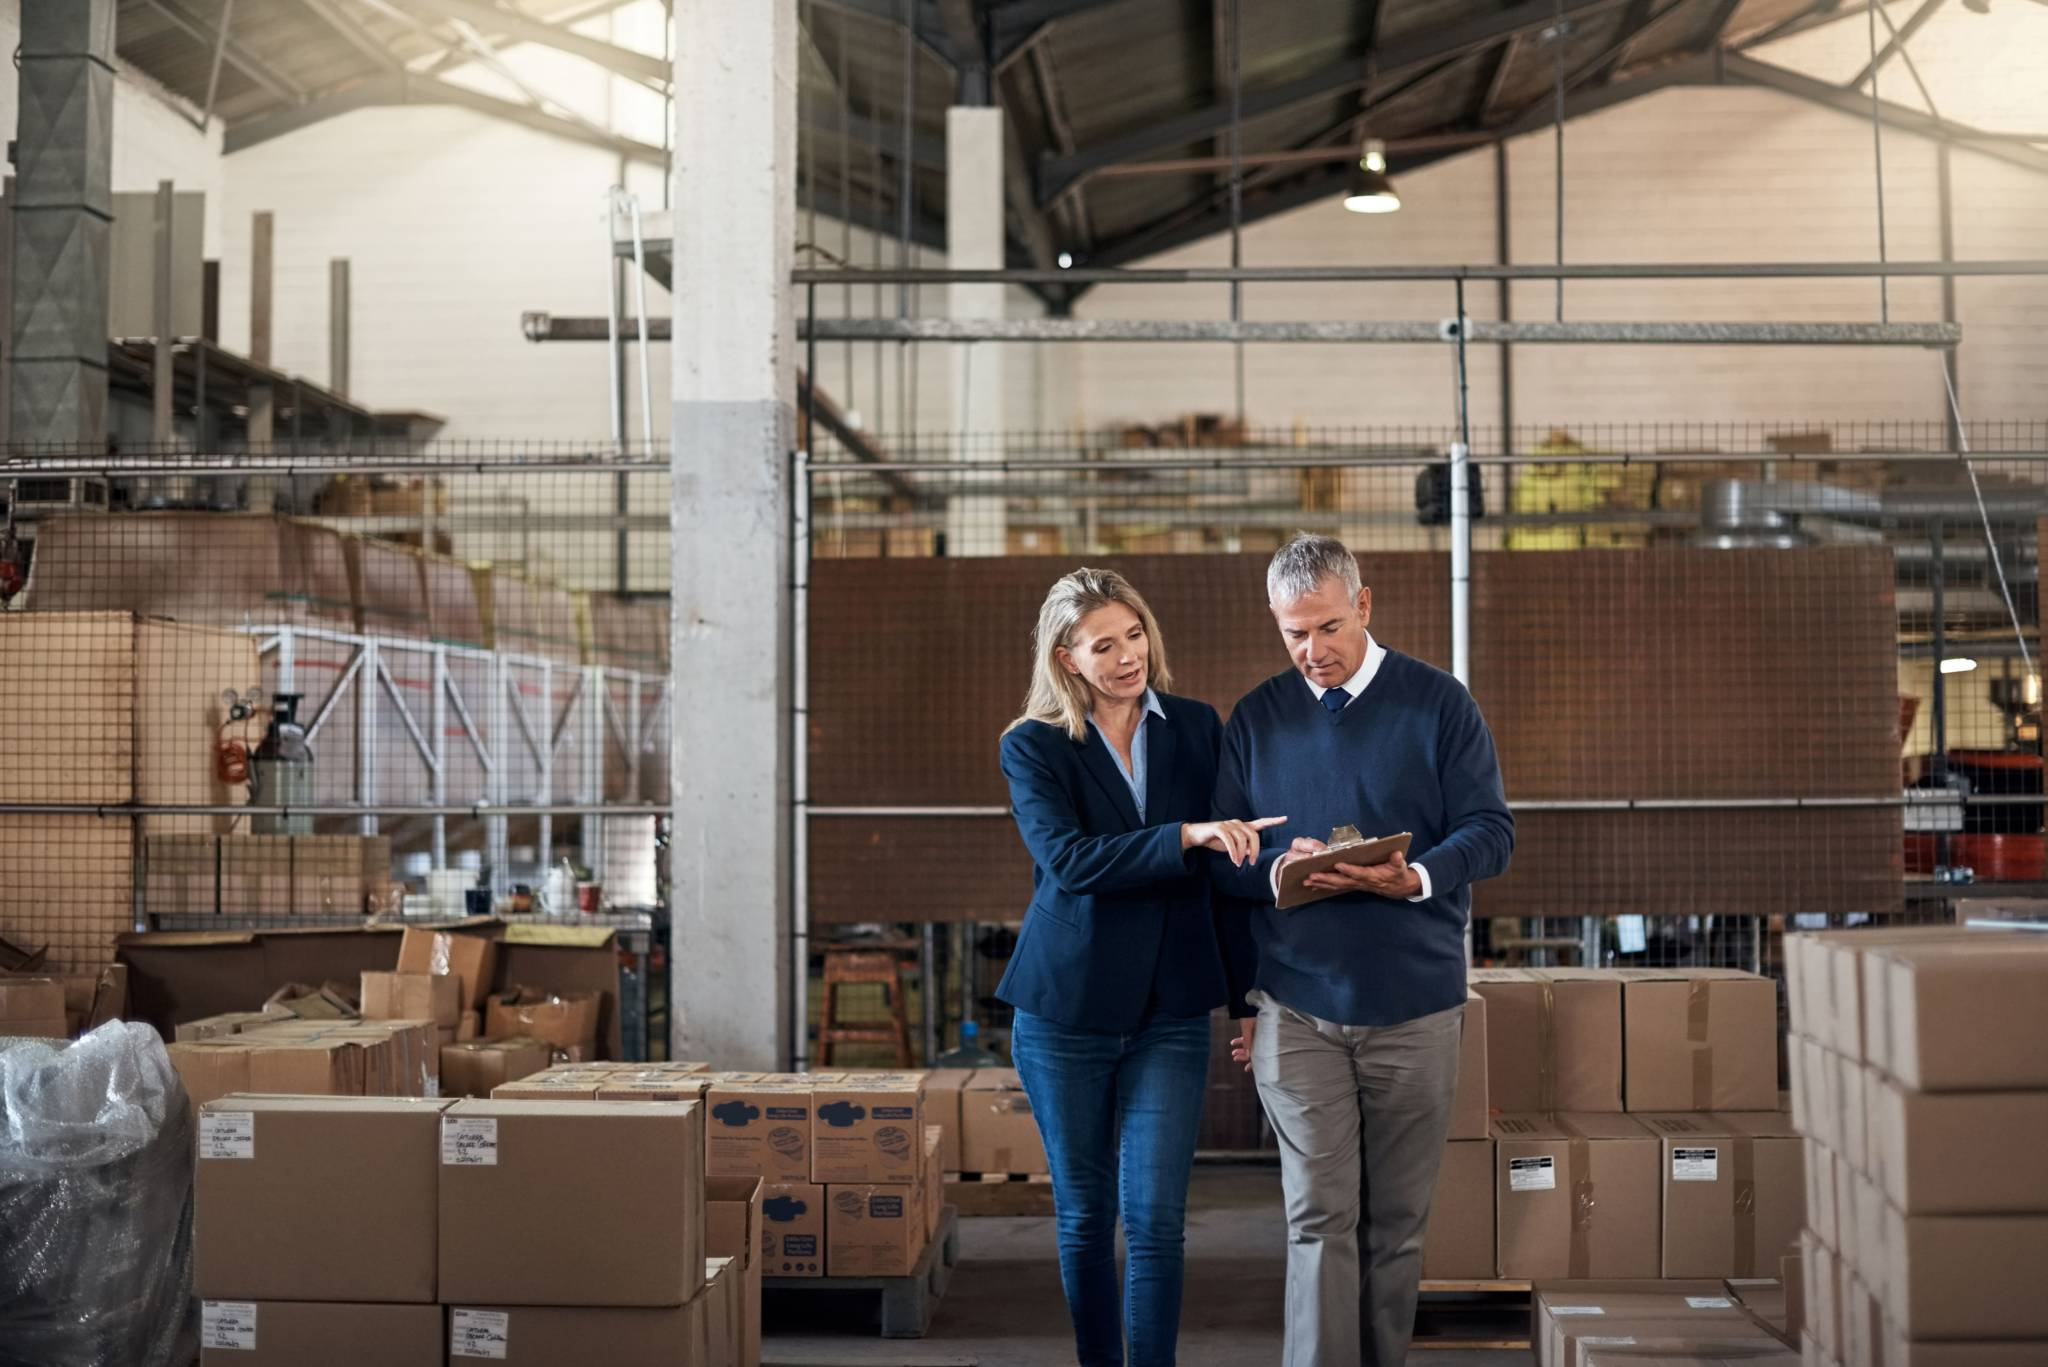 Seasonal side gig business owner discussing storage and warehousing options